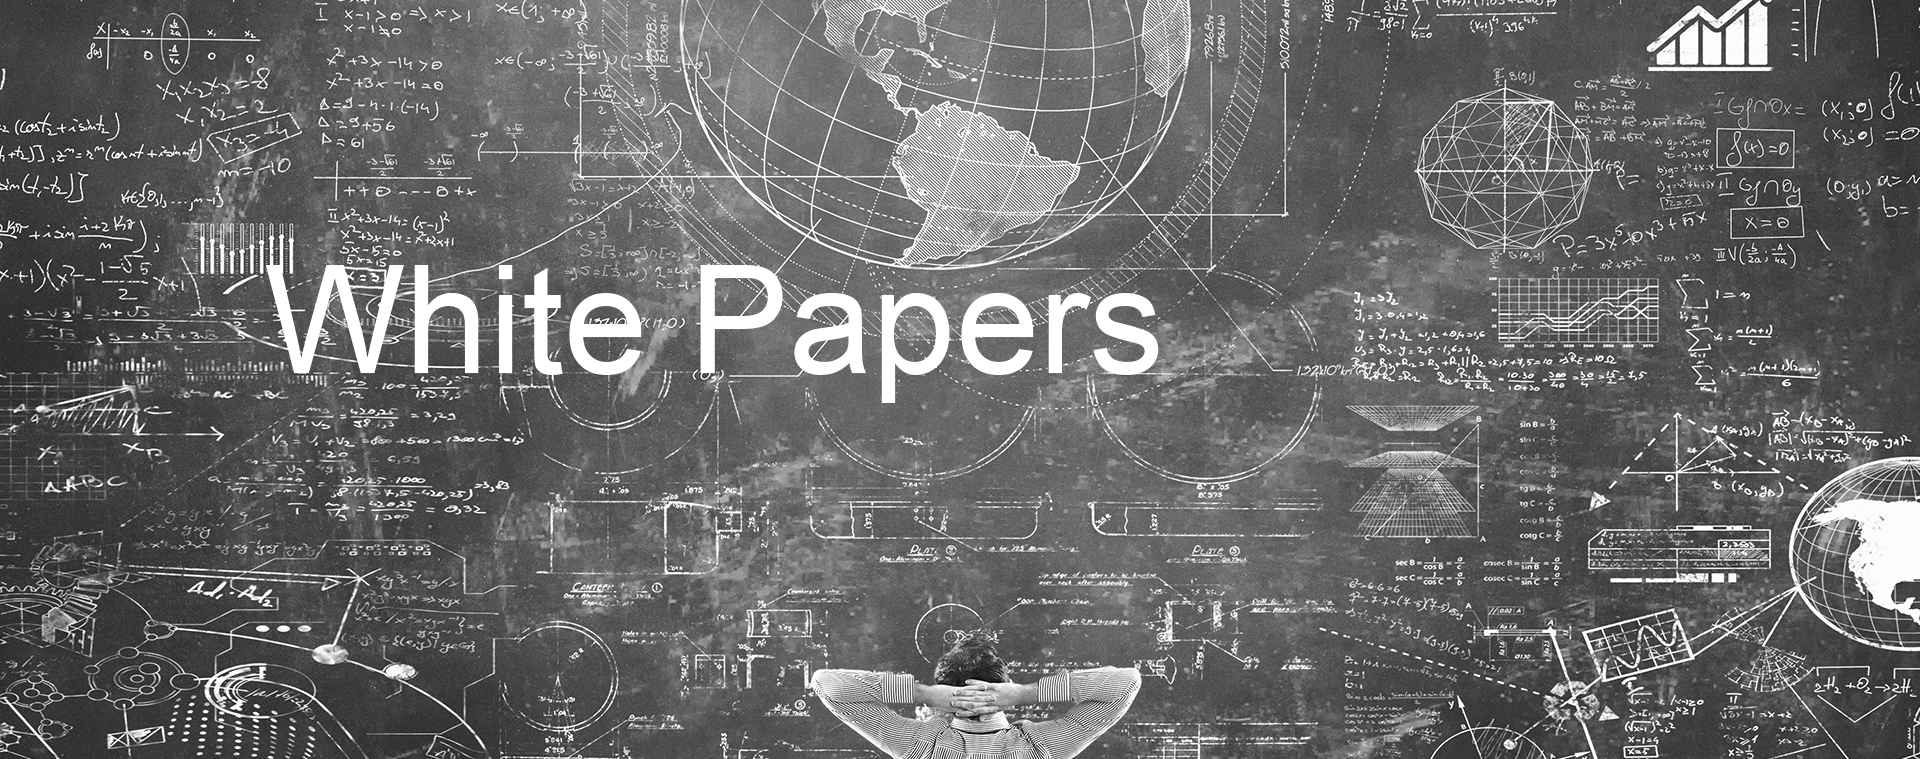 White papers Insurance